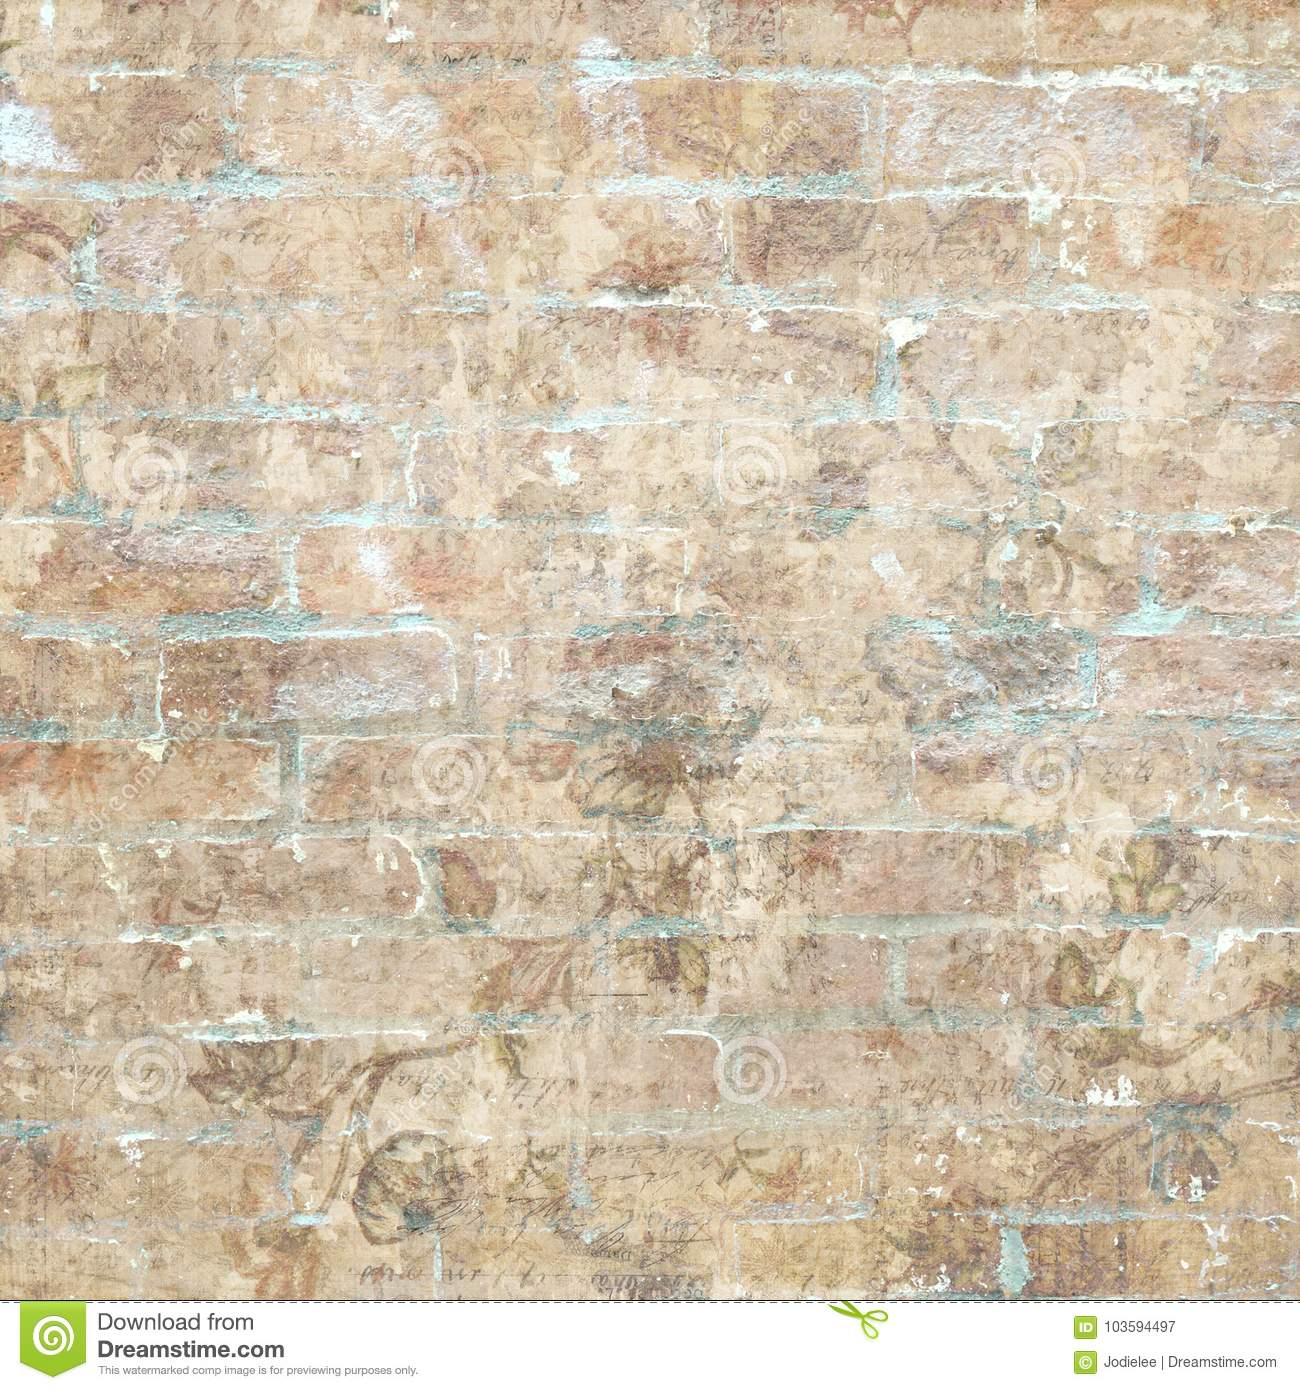 Grungy shabby vintage brick wall with floral pattern